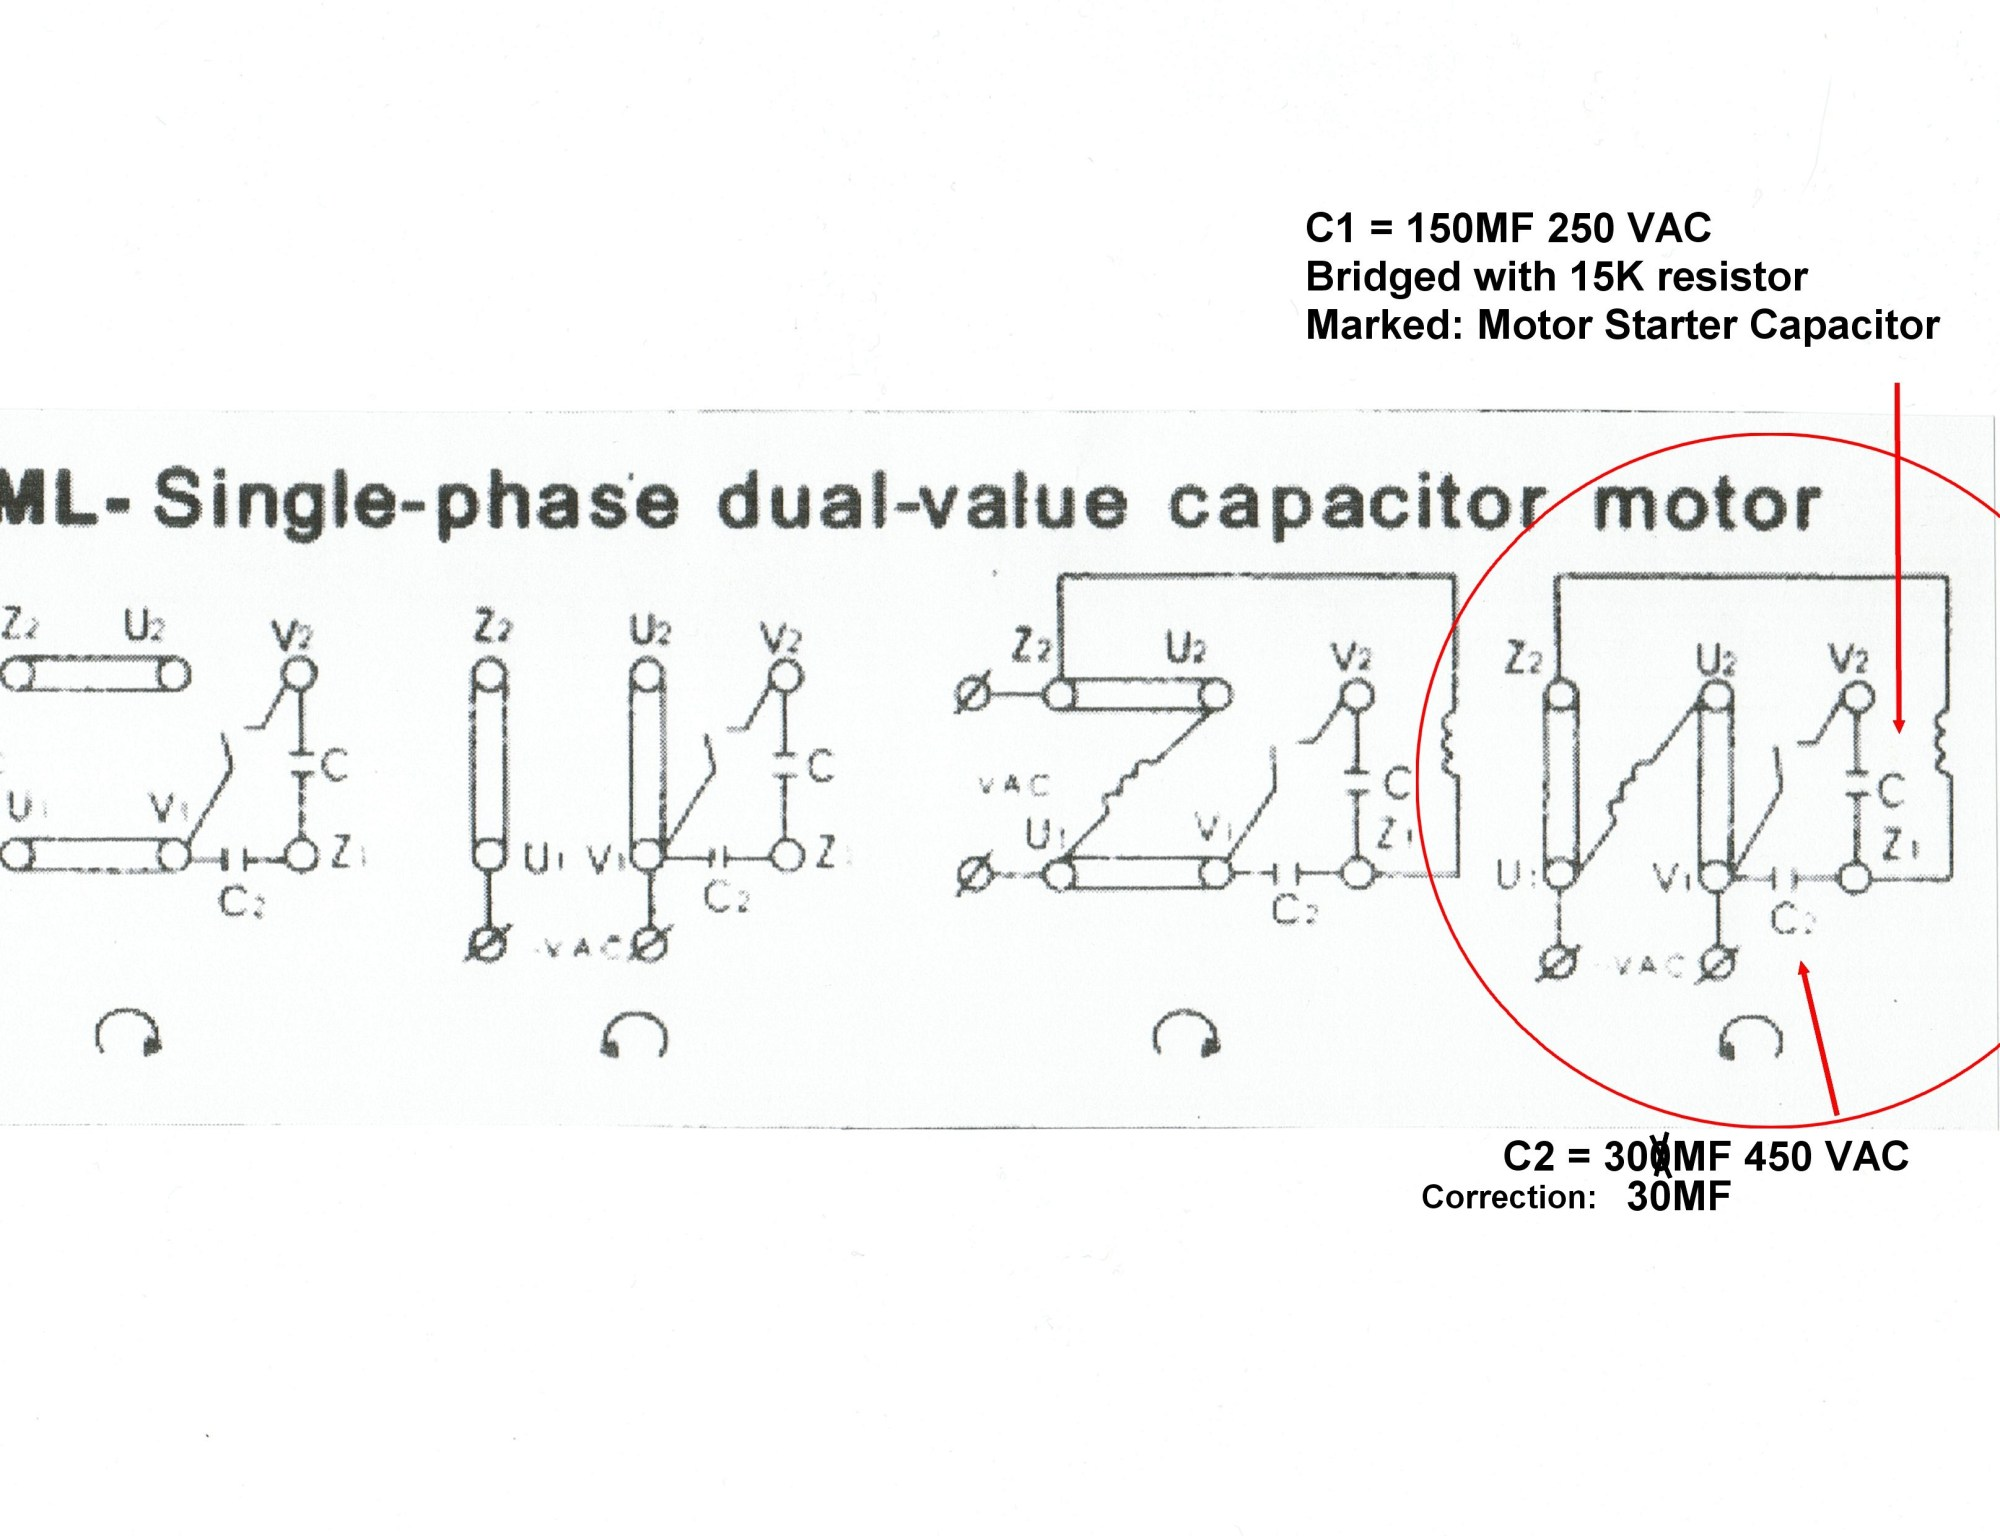 hight resolution of wiring diagrams moreover baldor 3 phase motor wiring diagrams on 9 rh 14 beyonddogs nl